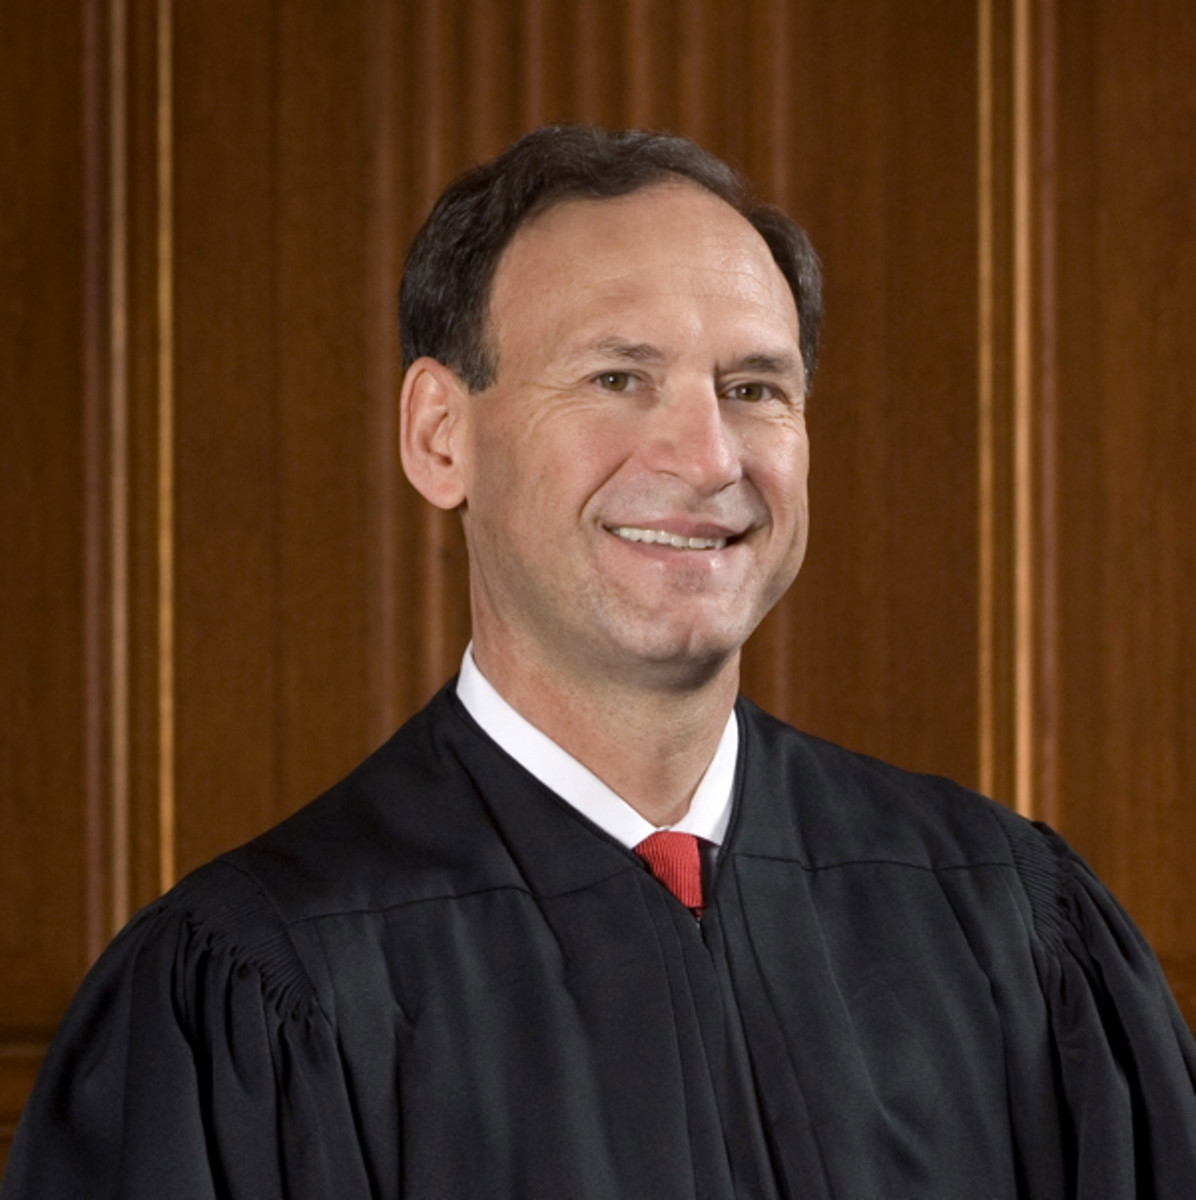 a biography of supreme court justice in trenton new jersey Following law school, breyer clerked on the supreme court for justice arthur   samuel anthony alito jr was born on april 1, 1950, in trenton, new jersey.